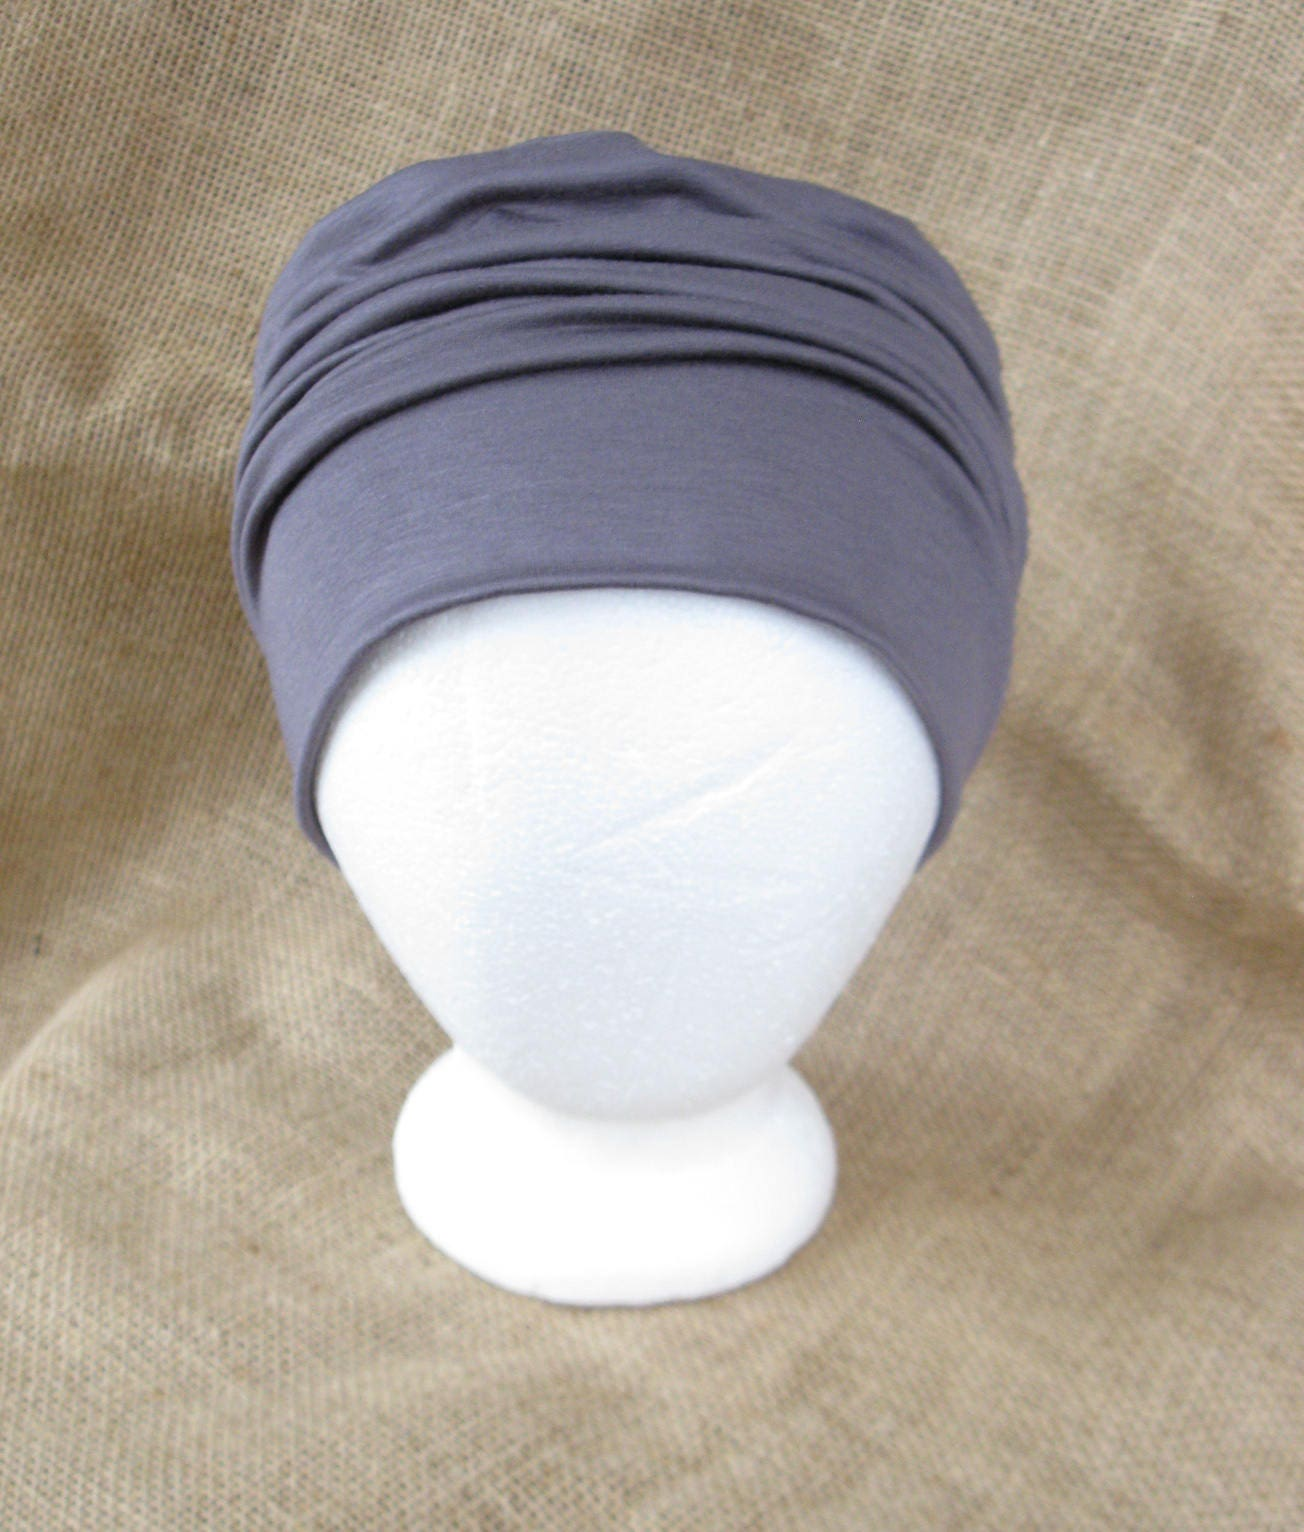 c7a023f1ea3 Bamboo Chemo Hat - Charcoal Gray Chemo Headwear for Men or Women